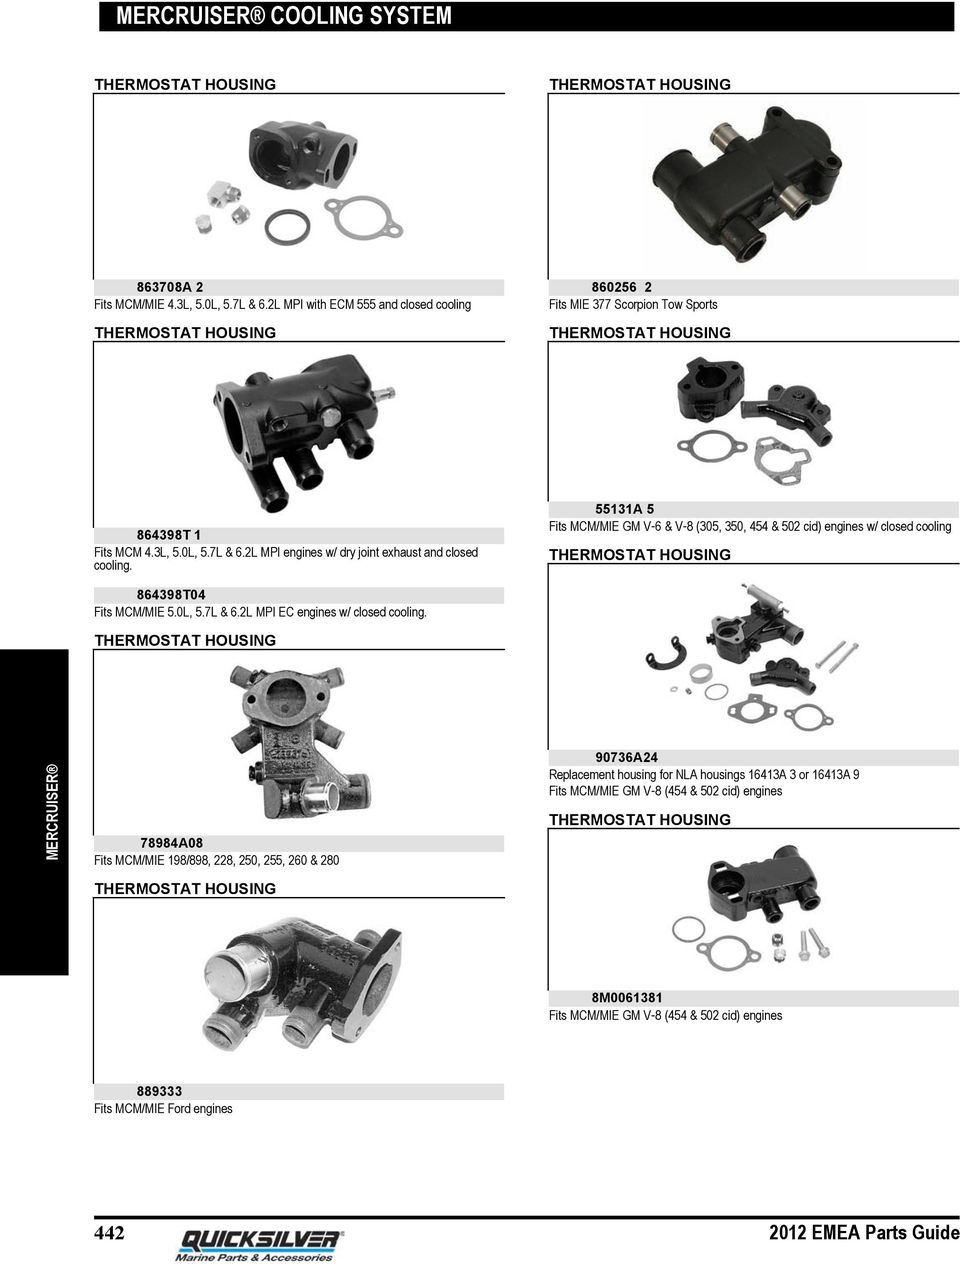 hight resolution of 2l mpi engines w dry joint exhaust and closed cooling 55131a 5 fits mcm